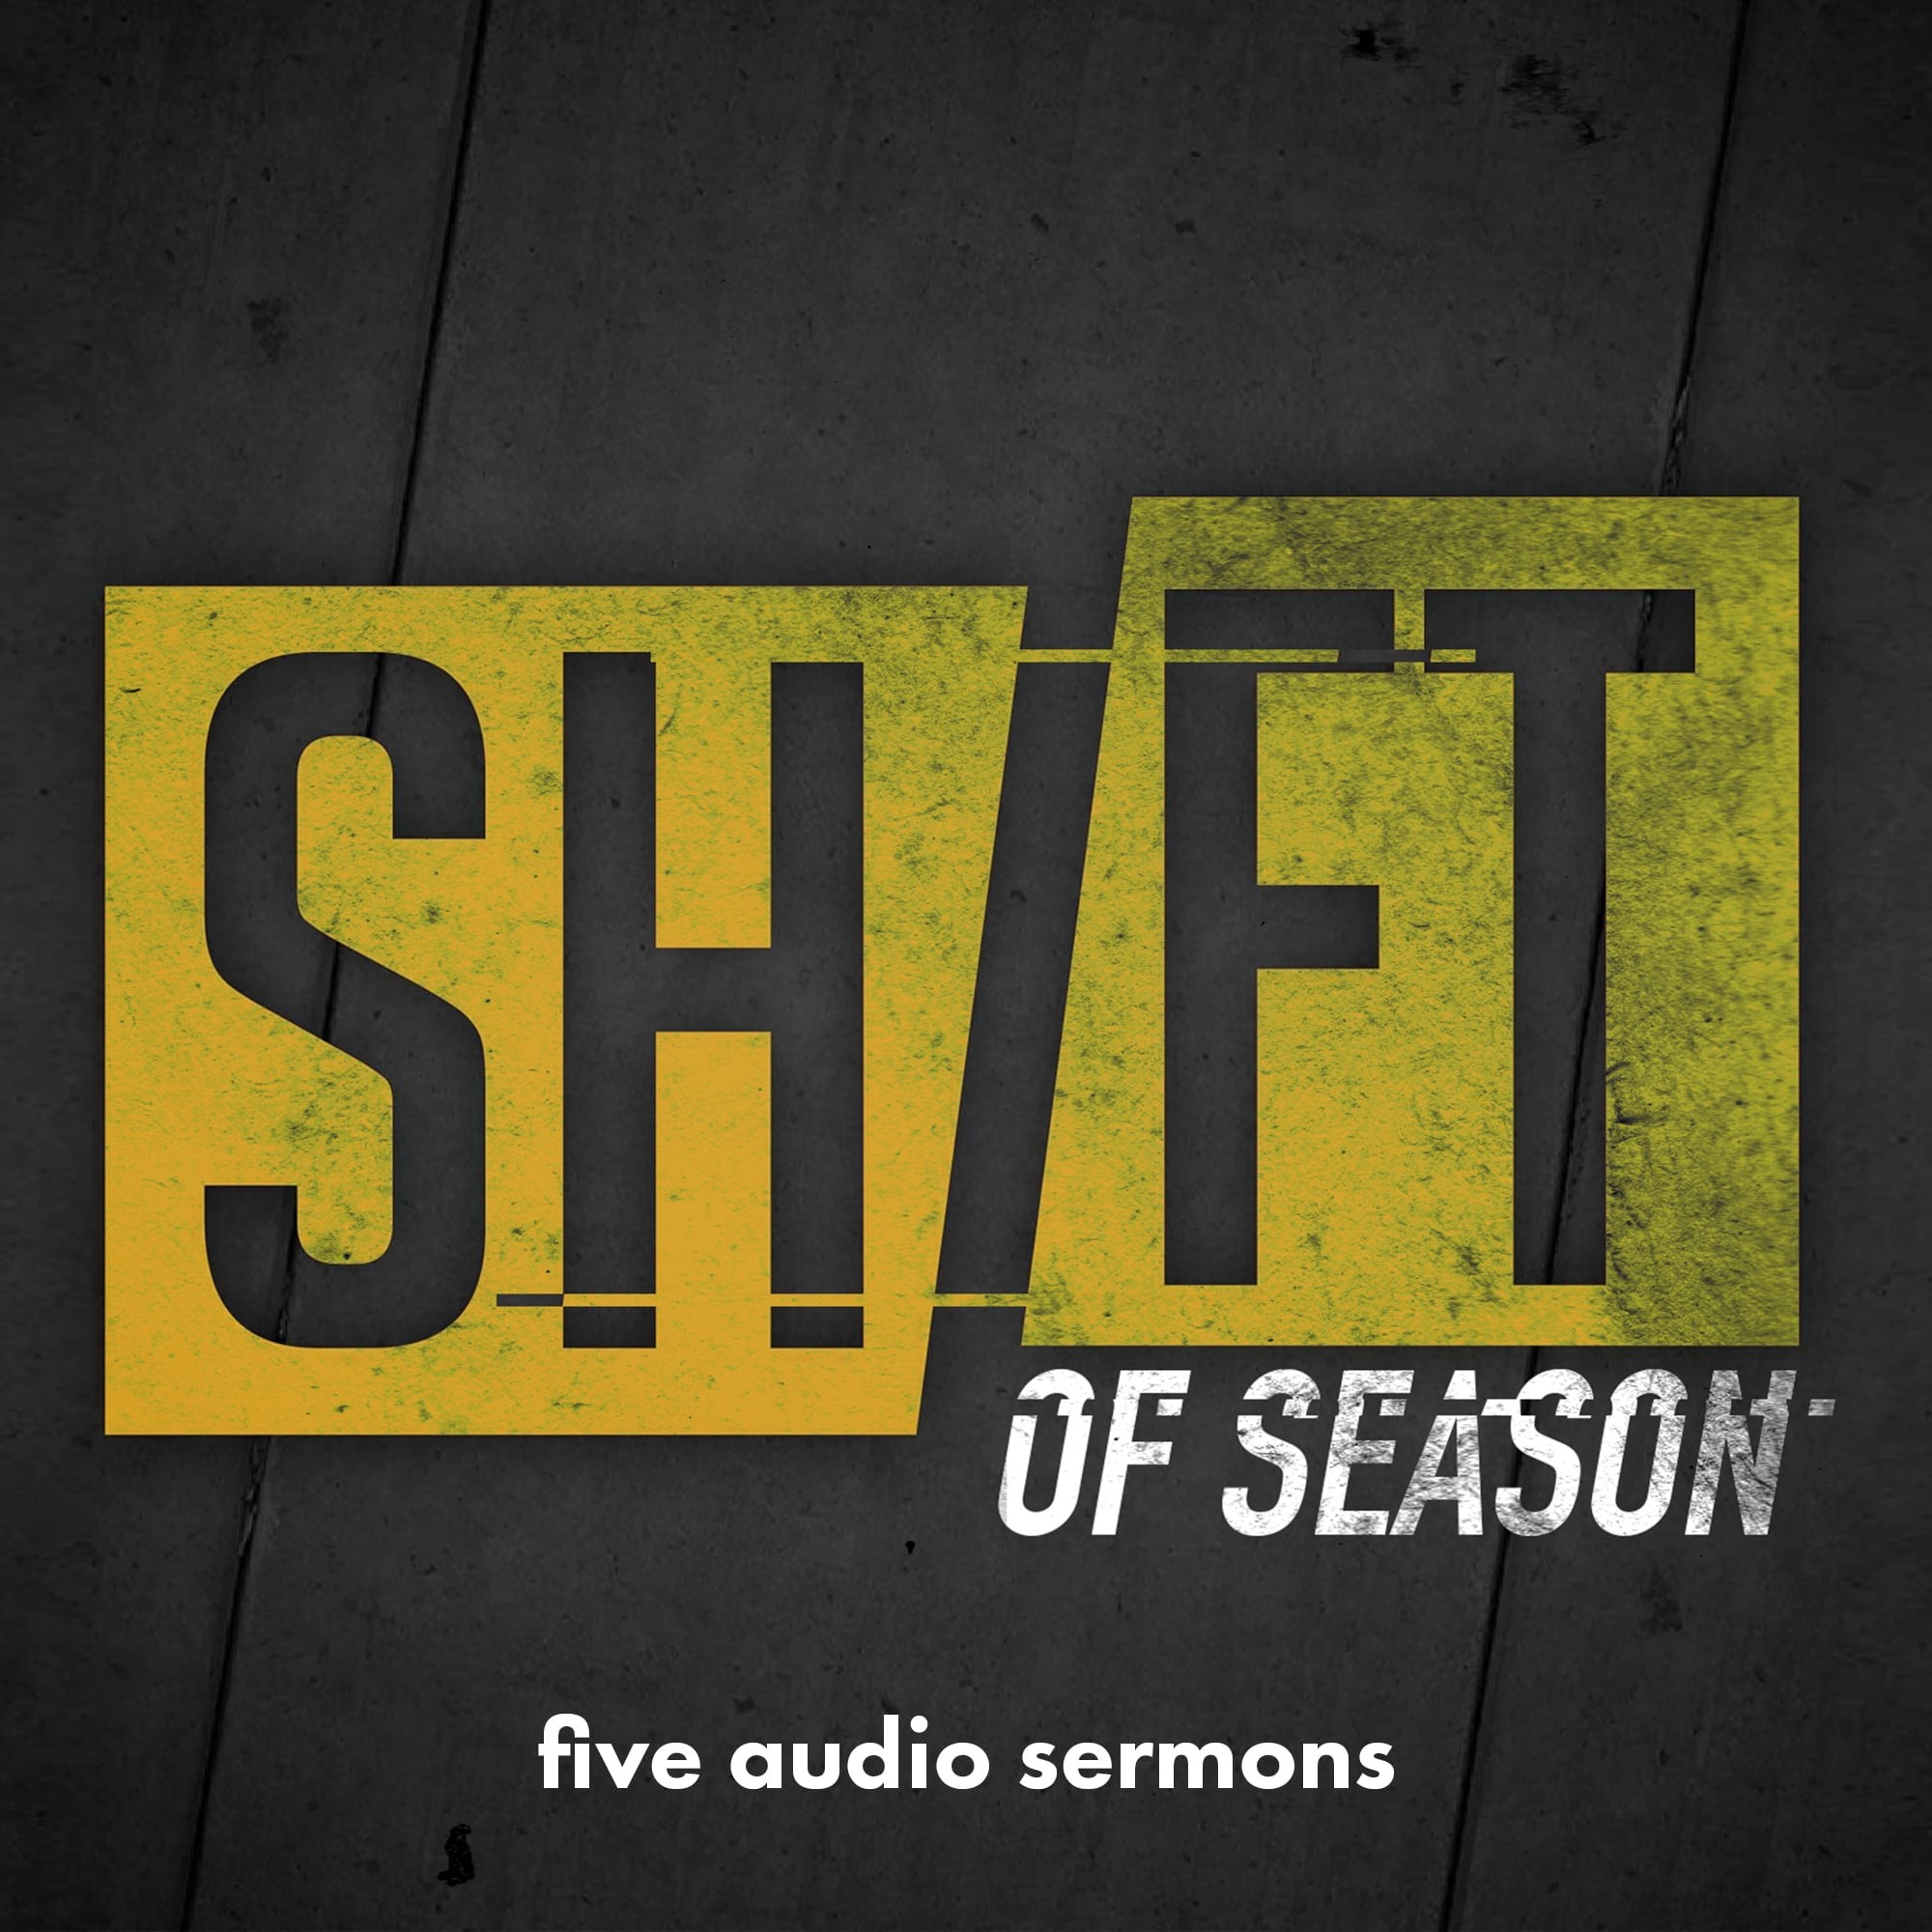 Series: Shift of Season